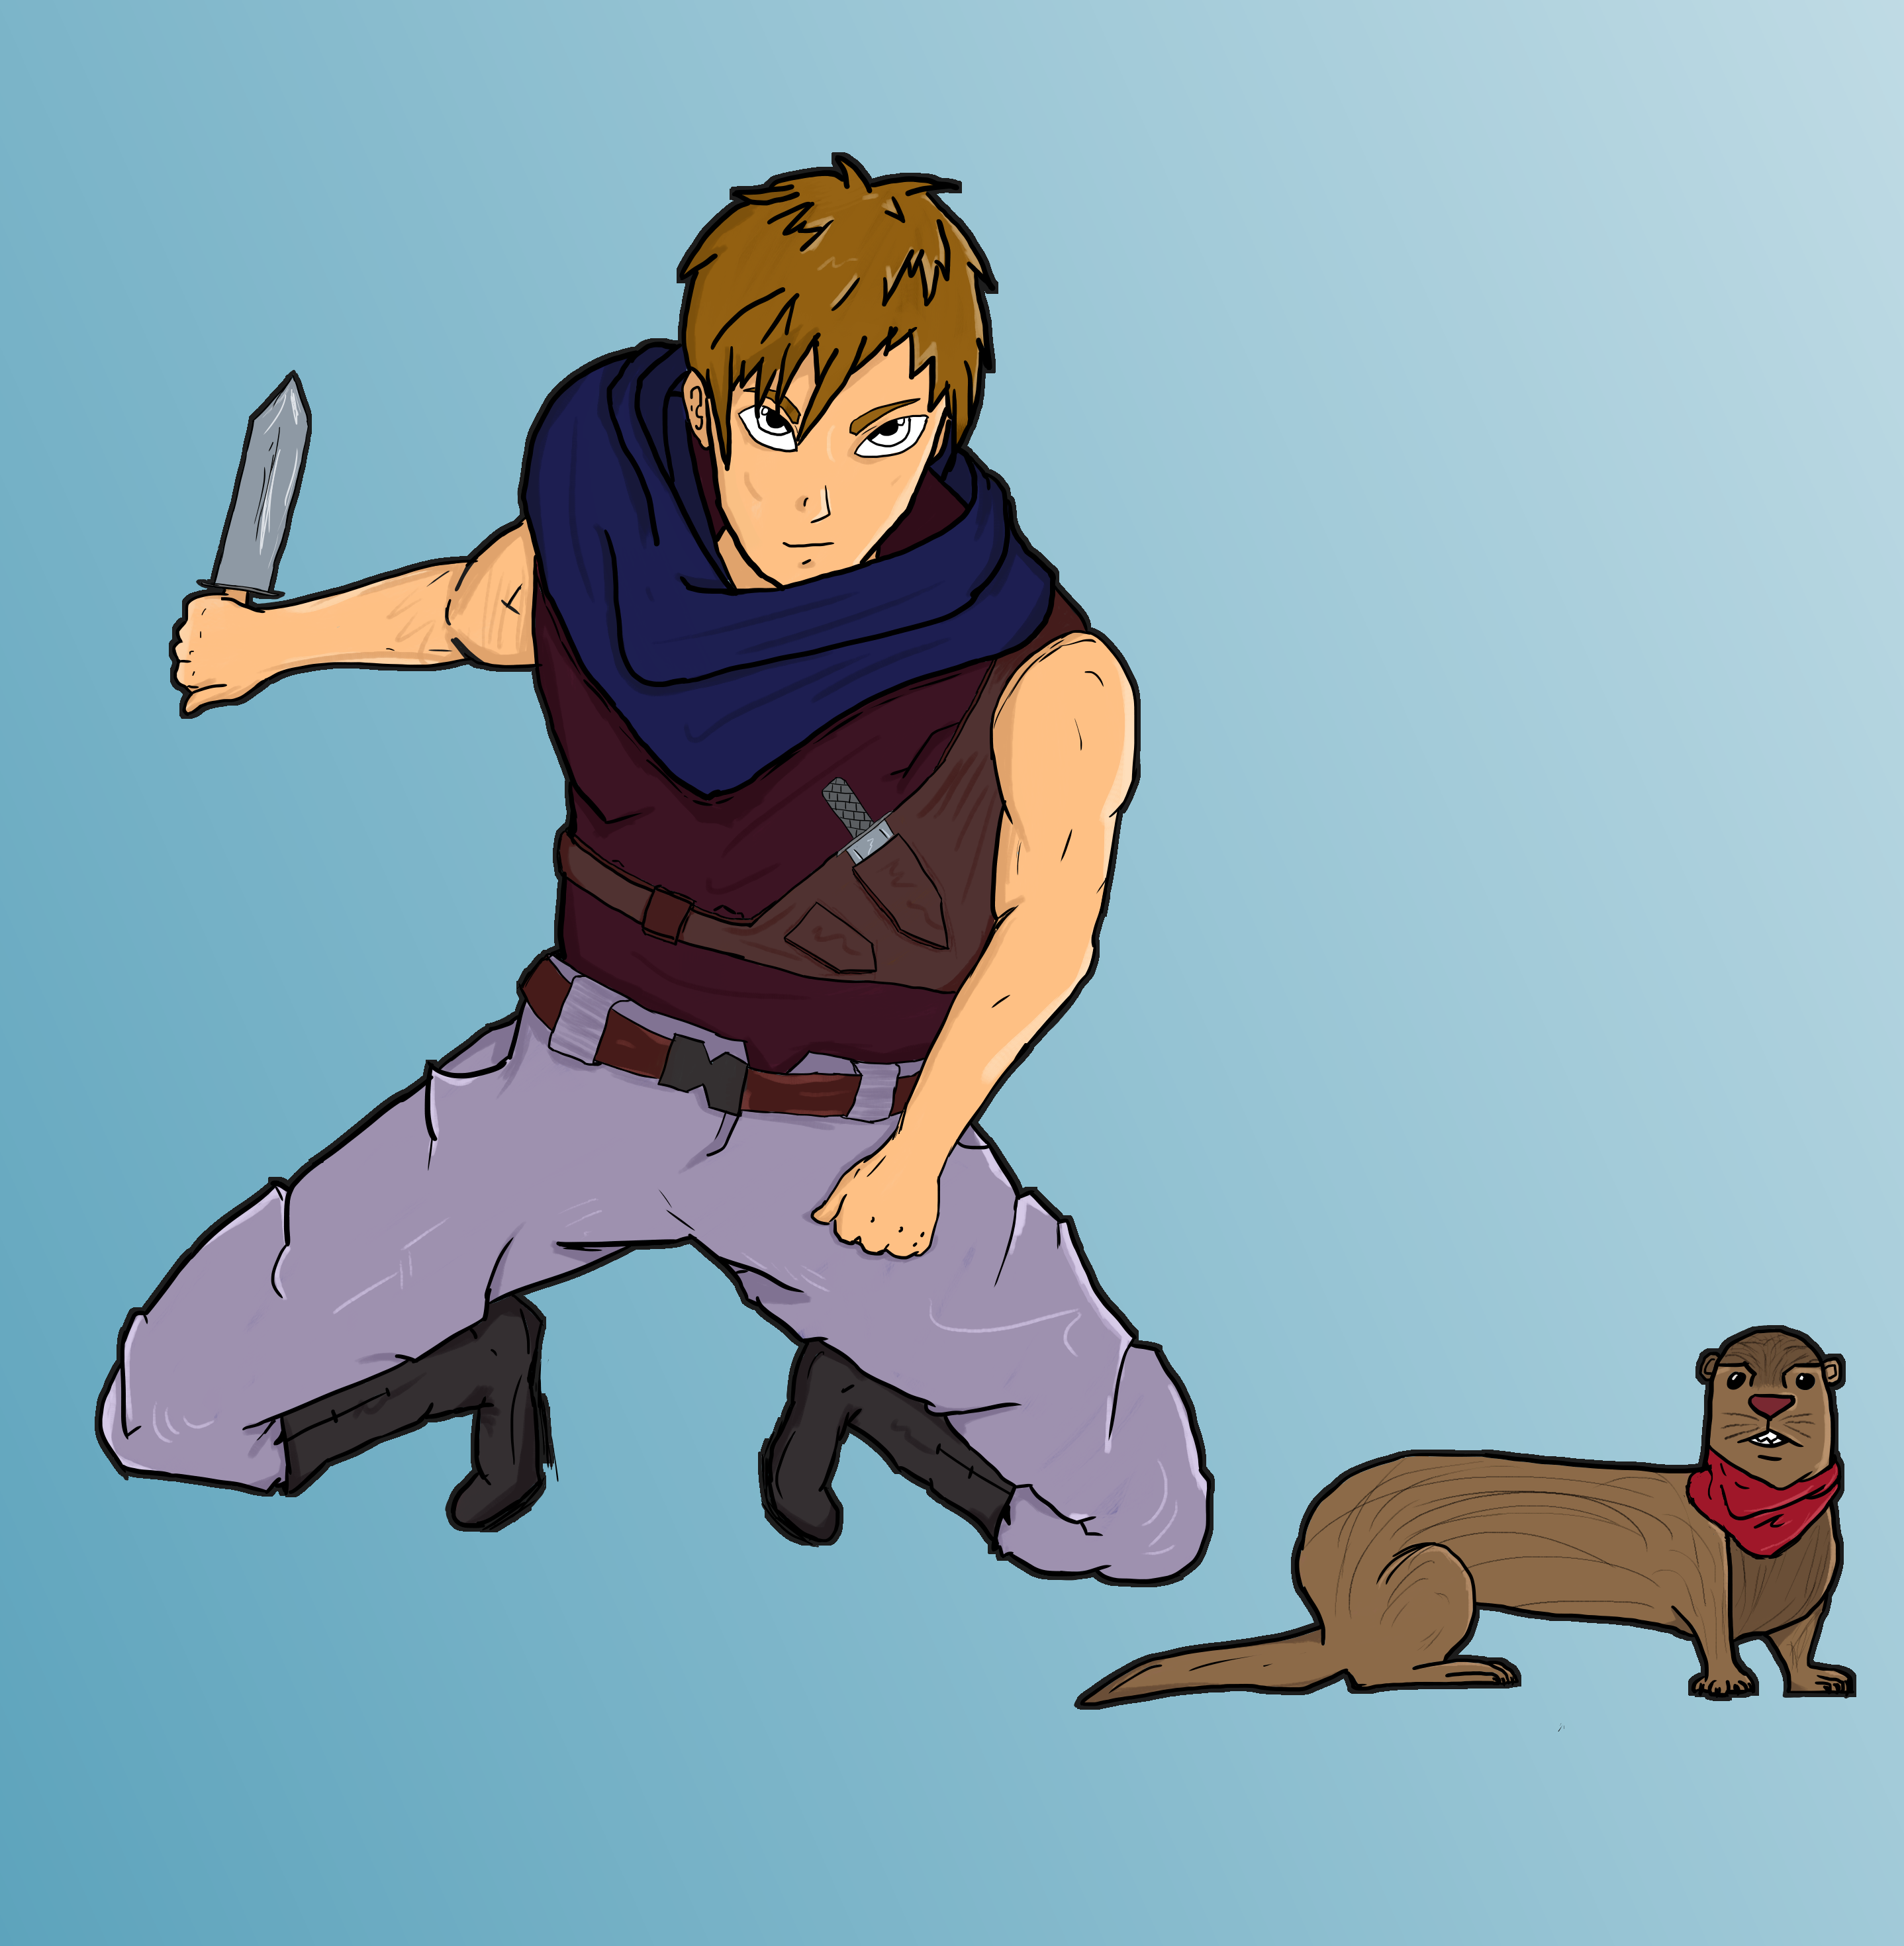 Hero & Pet: a thief and his otter